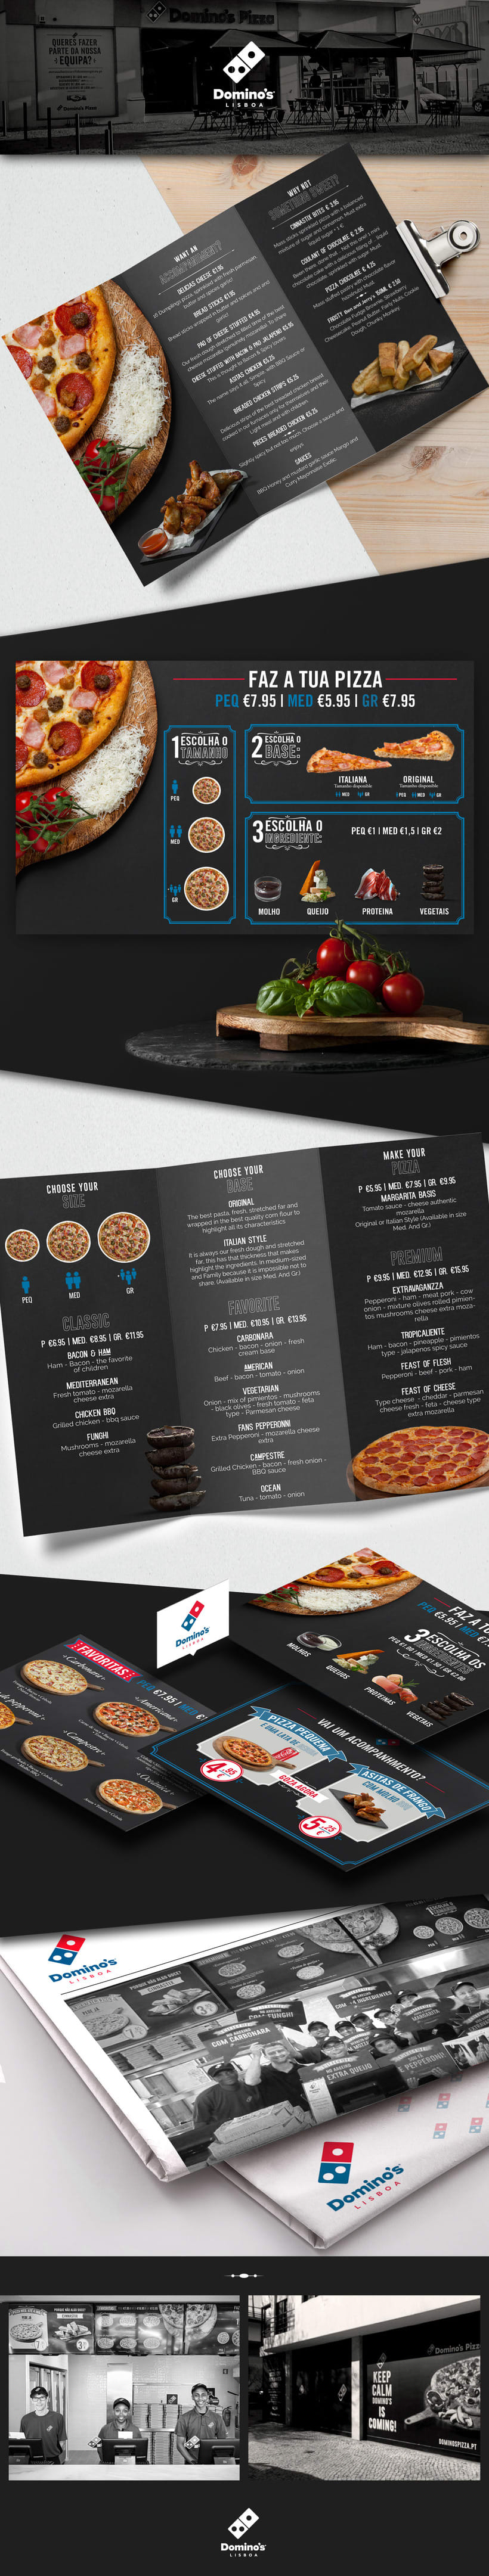 Domino's Pizza Menu Board -1